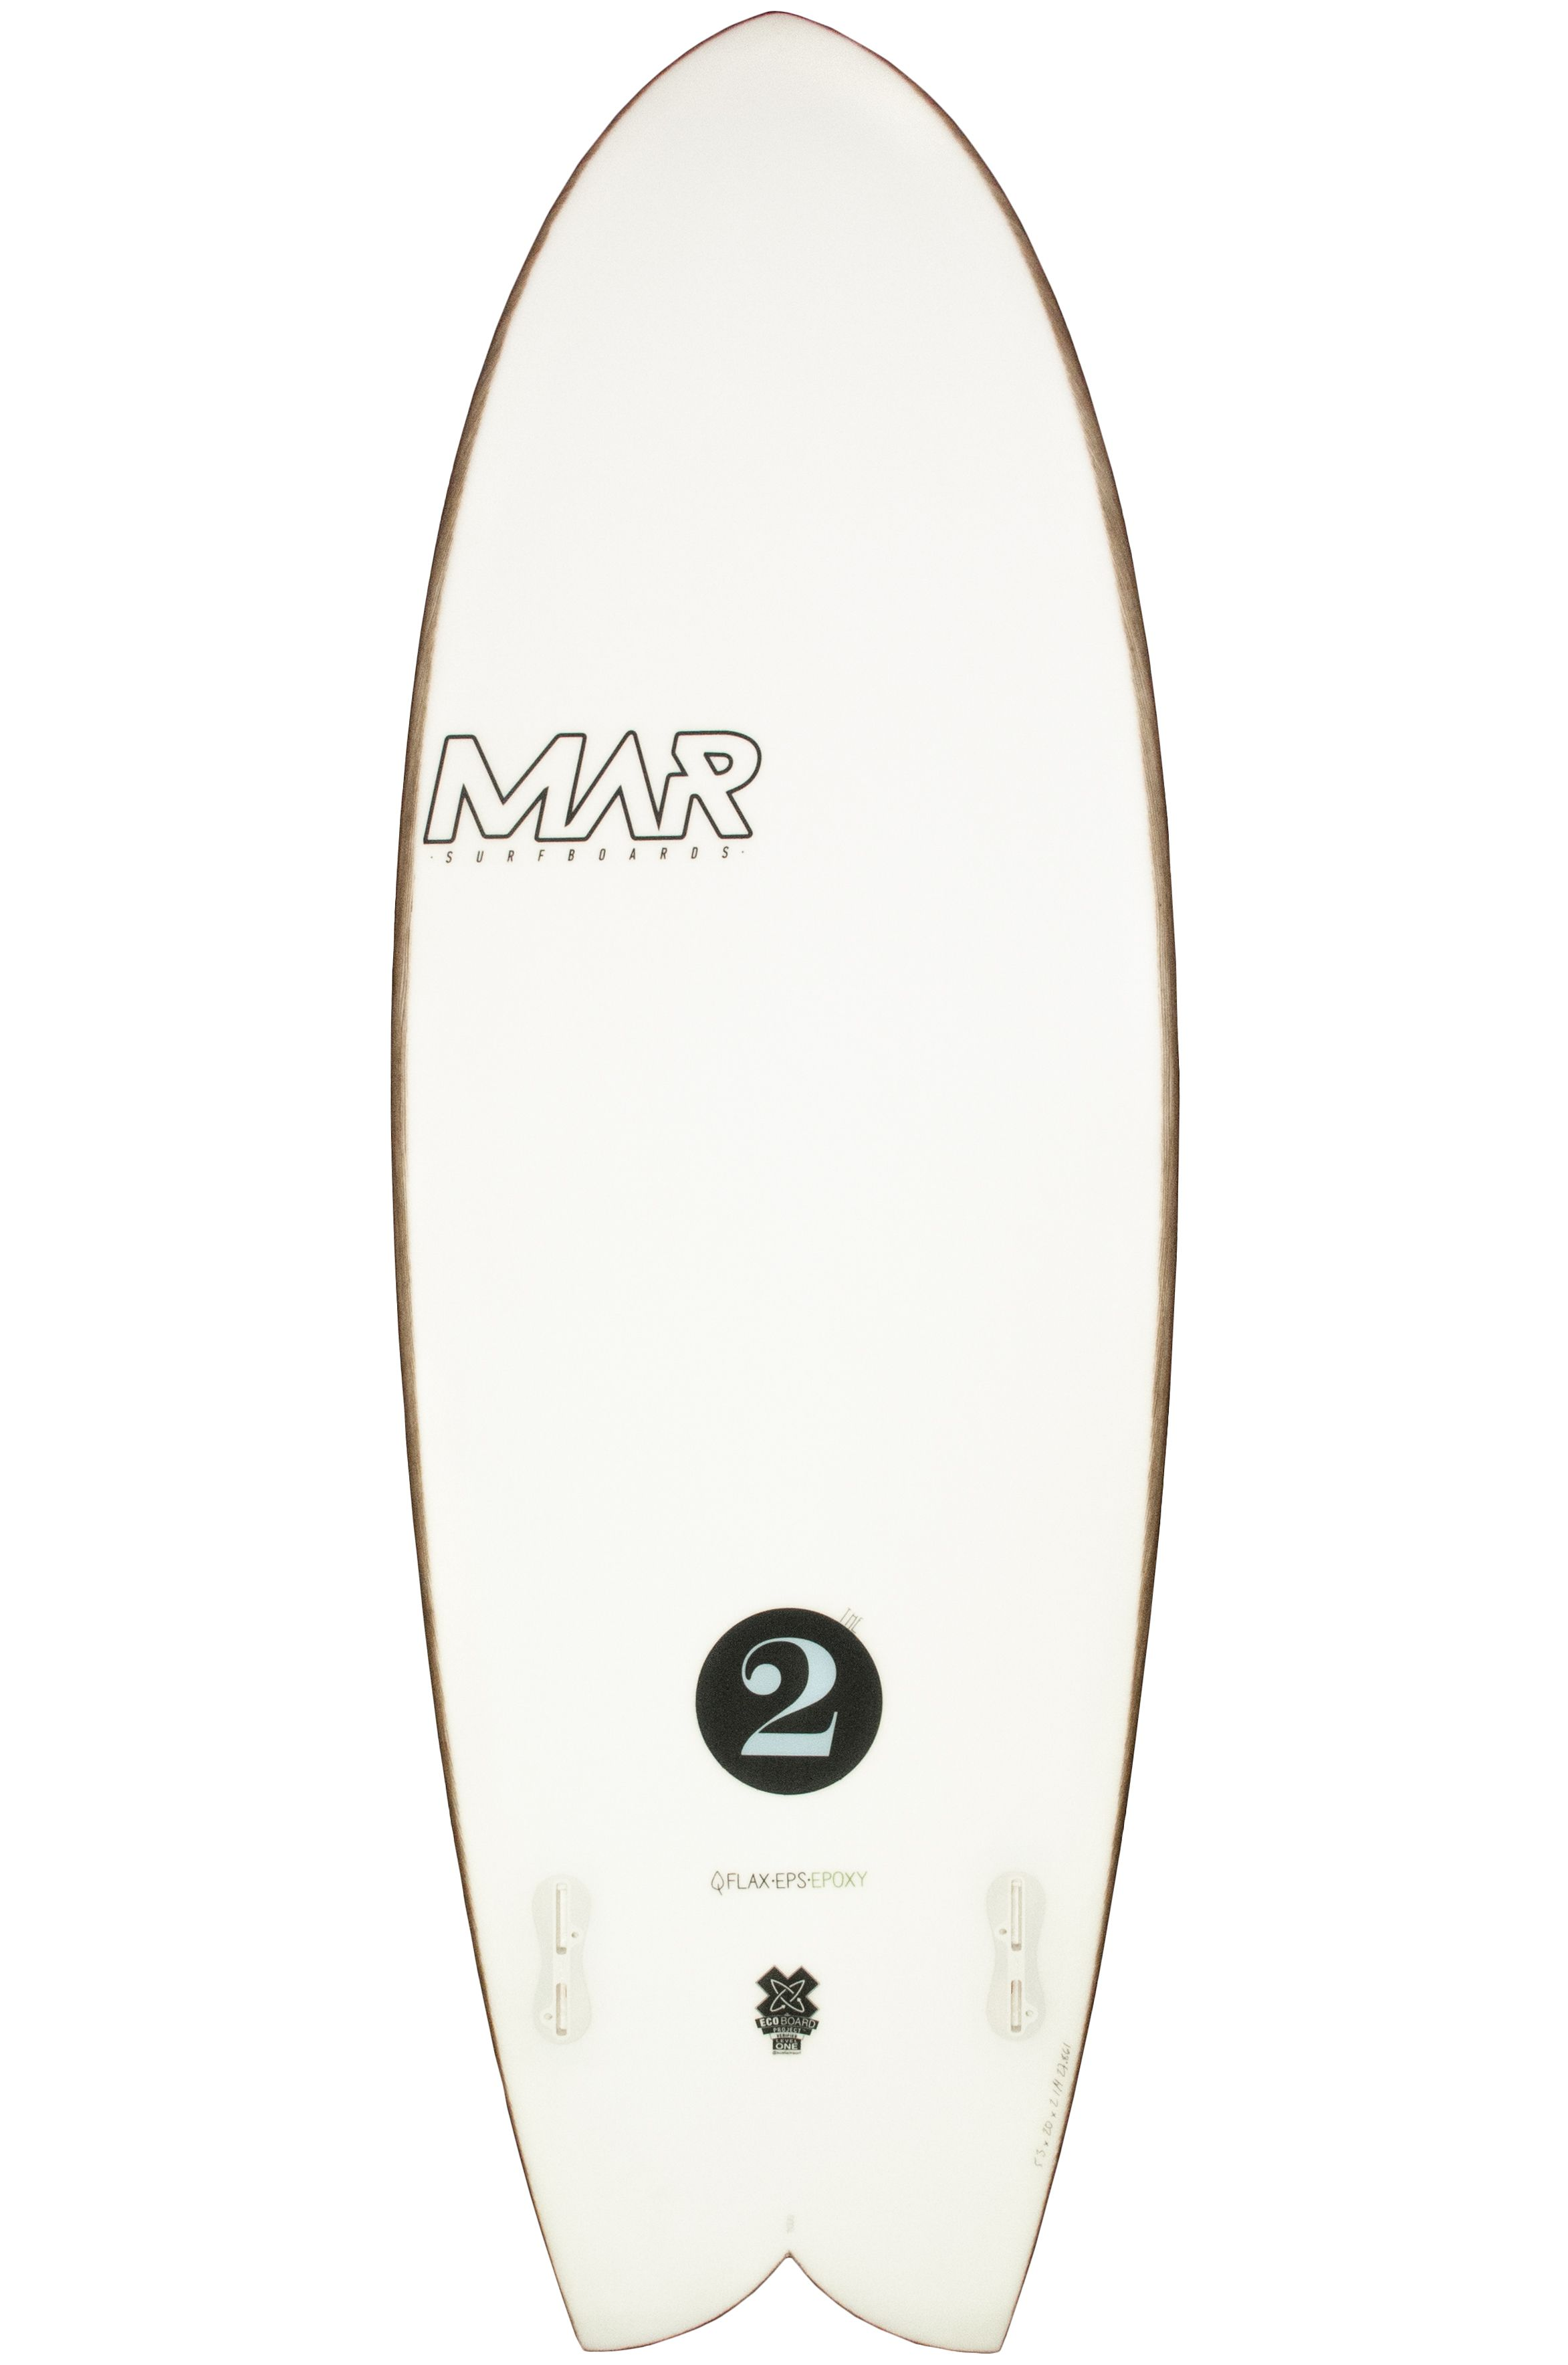 Prancha Surf Mar 5'8 THE 2 Swallow Tail - Color FCS II Twin Tab 5ft8